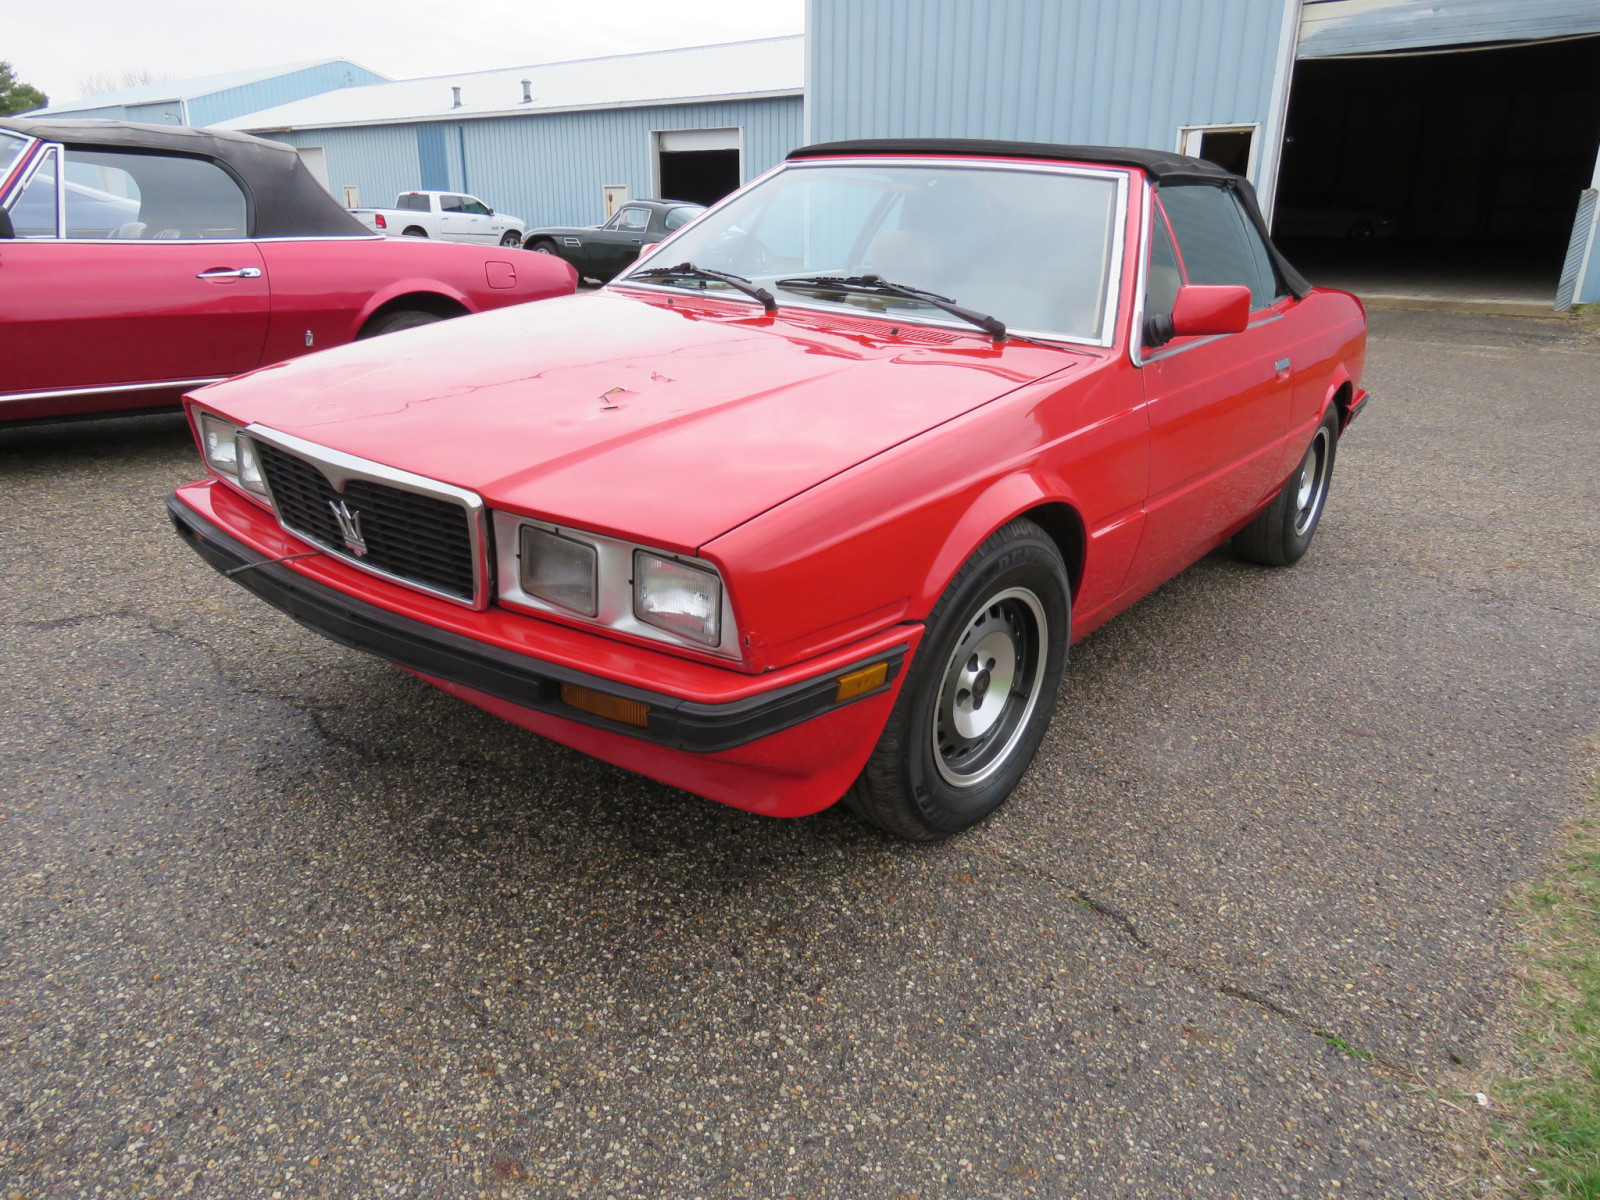 1986 MaserattiB1 Turbo Convertible - Image 1